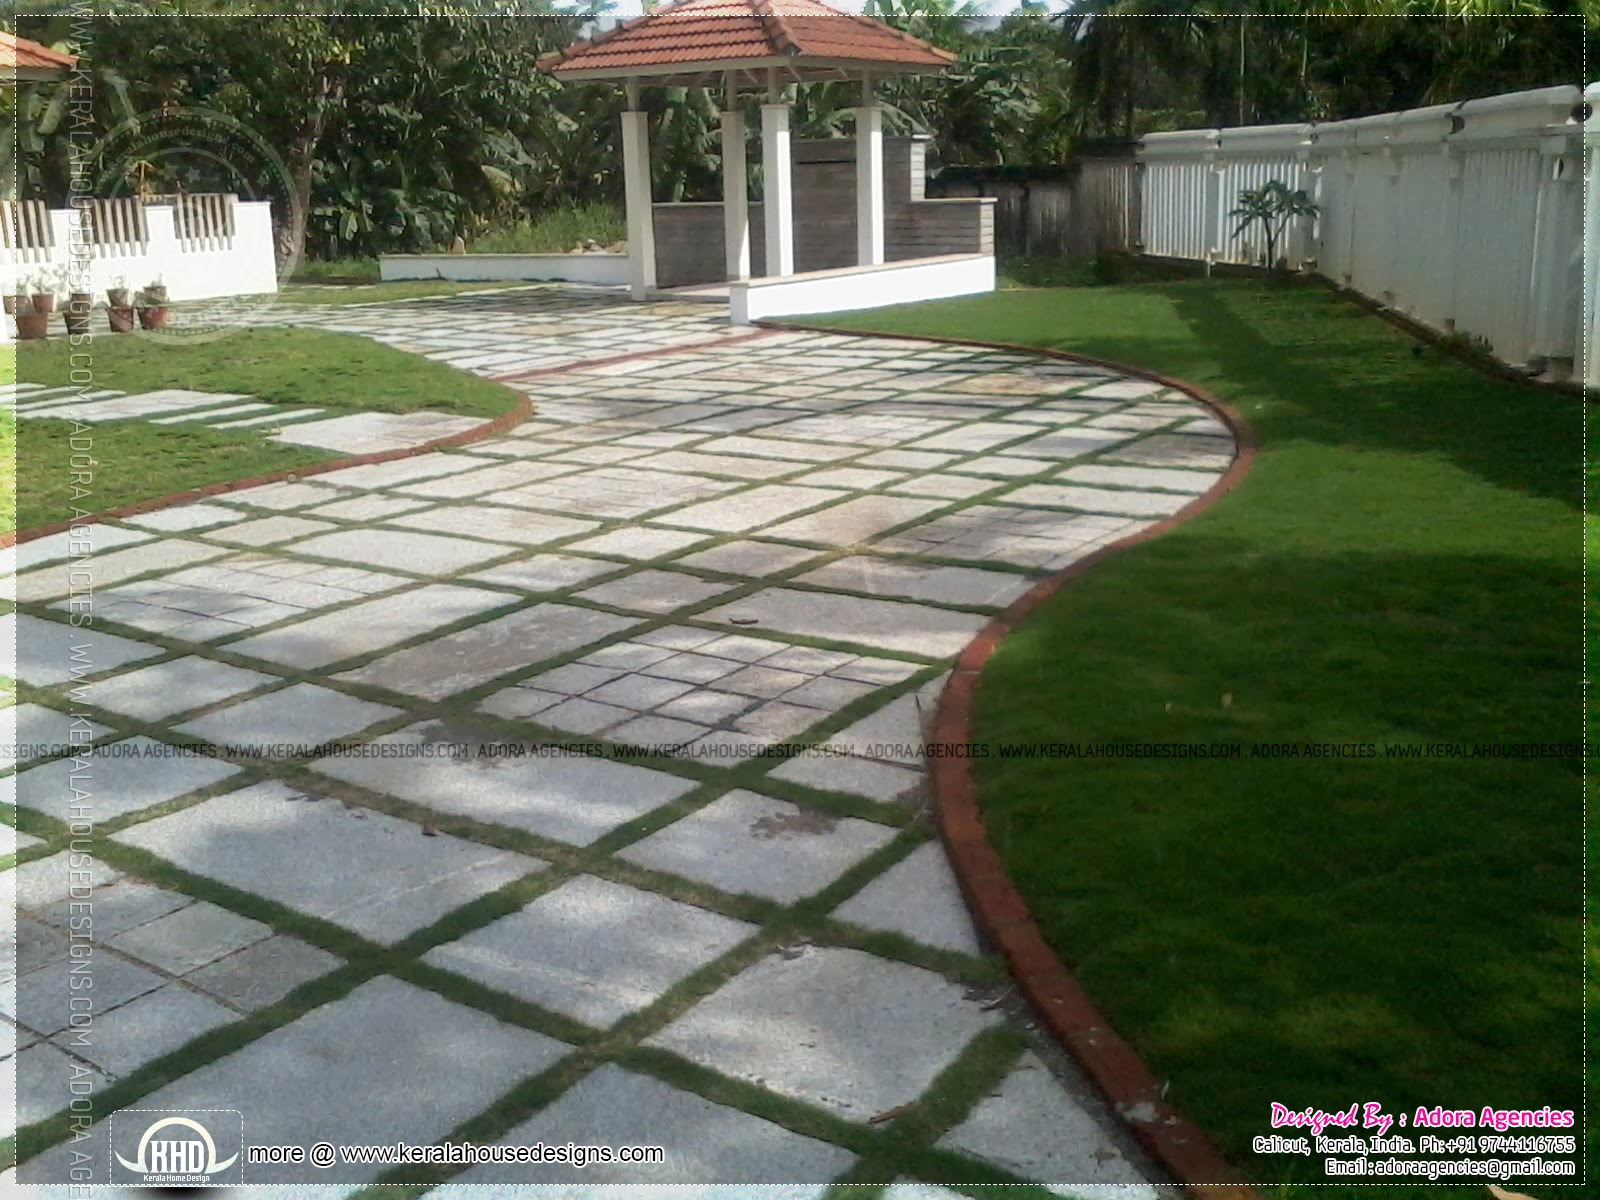 Exterior stone cladding kerala home design and floor plans for House garden design india